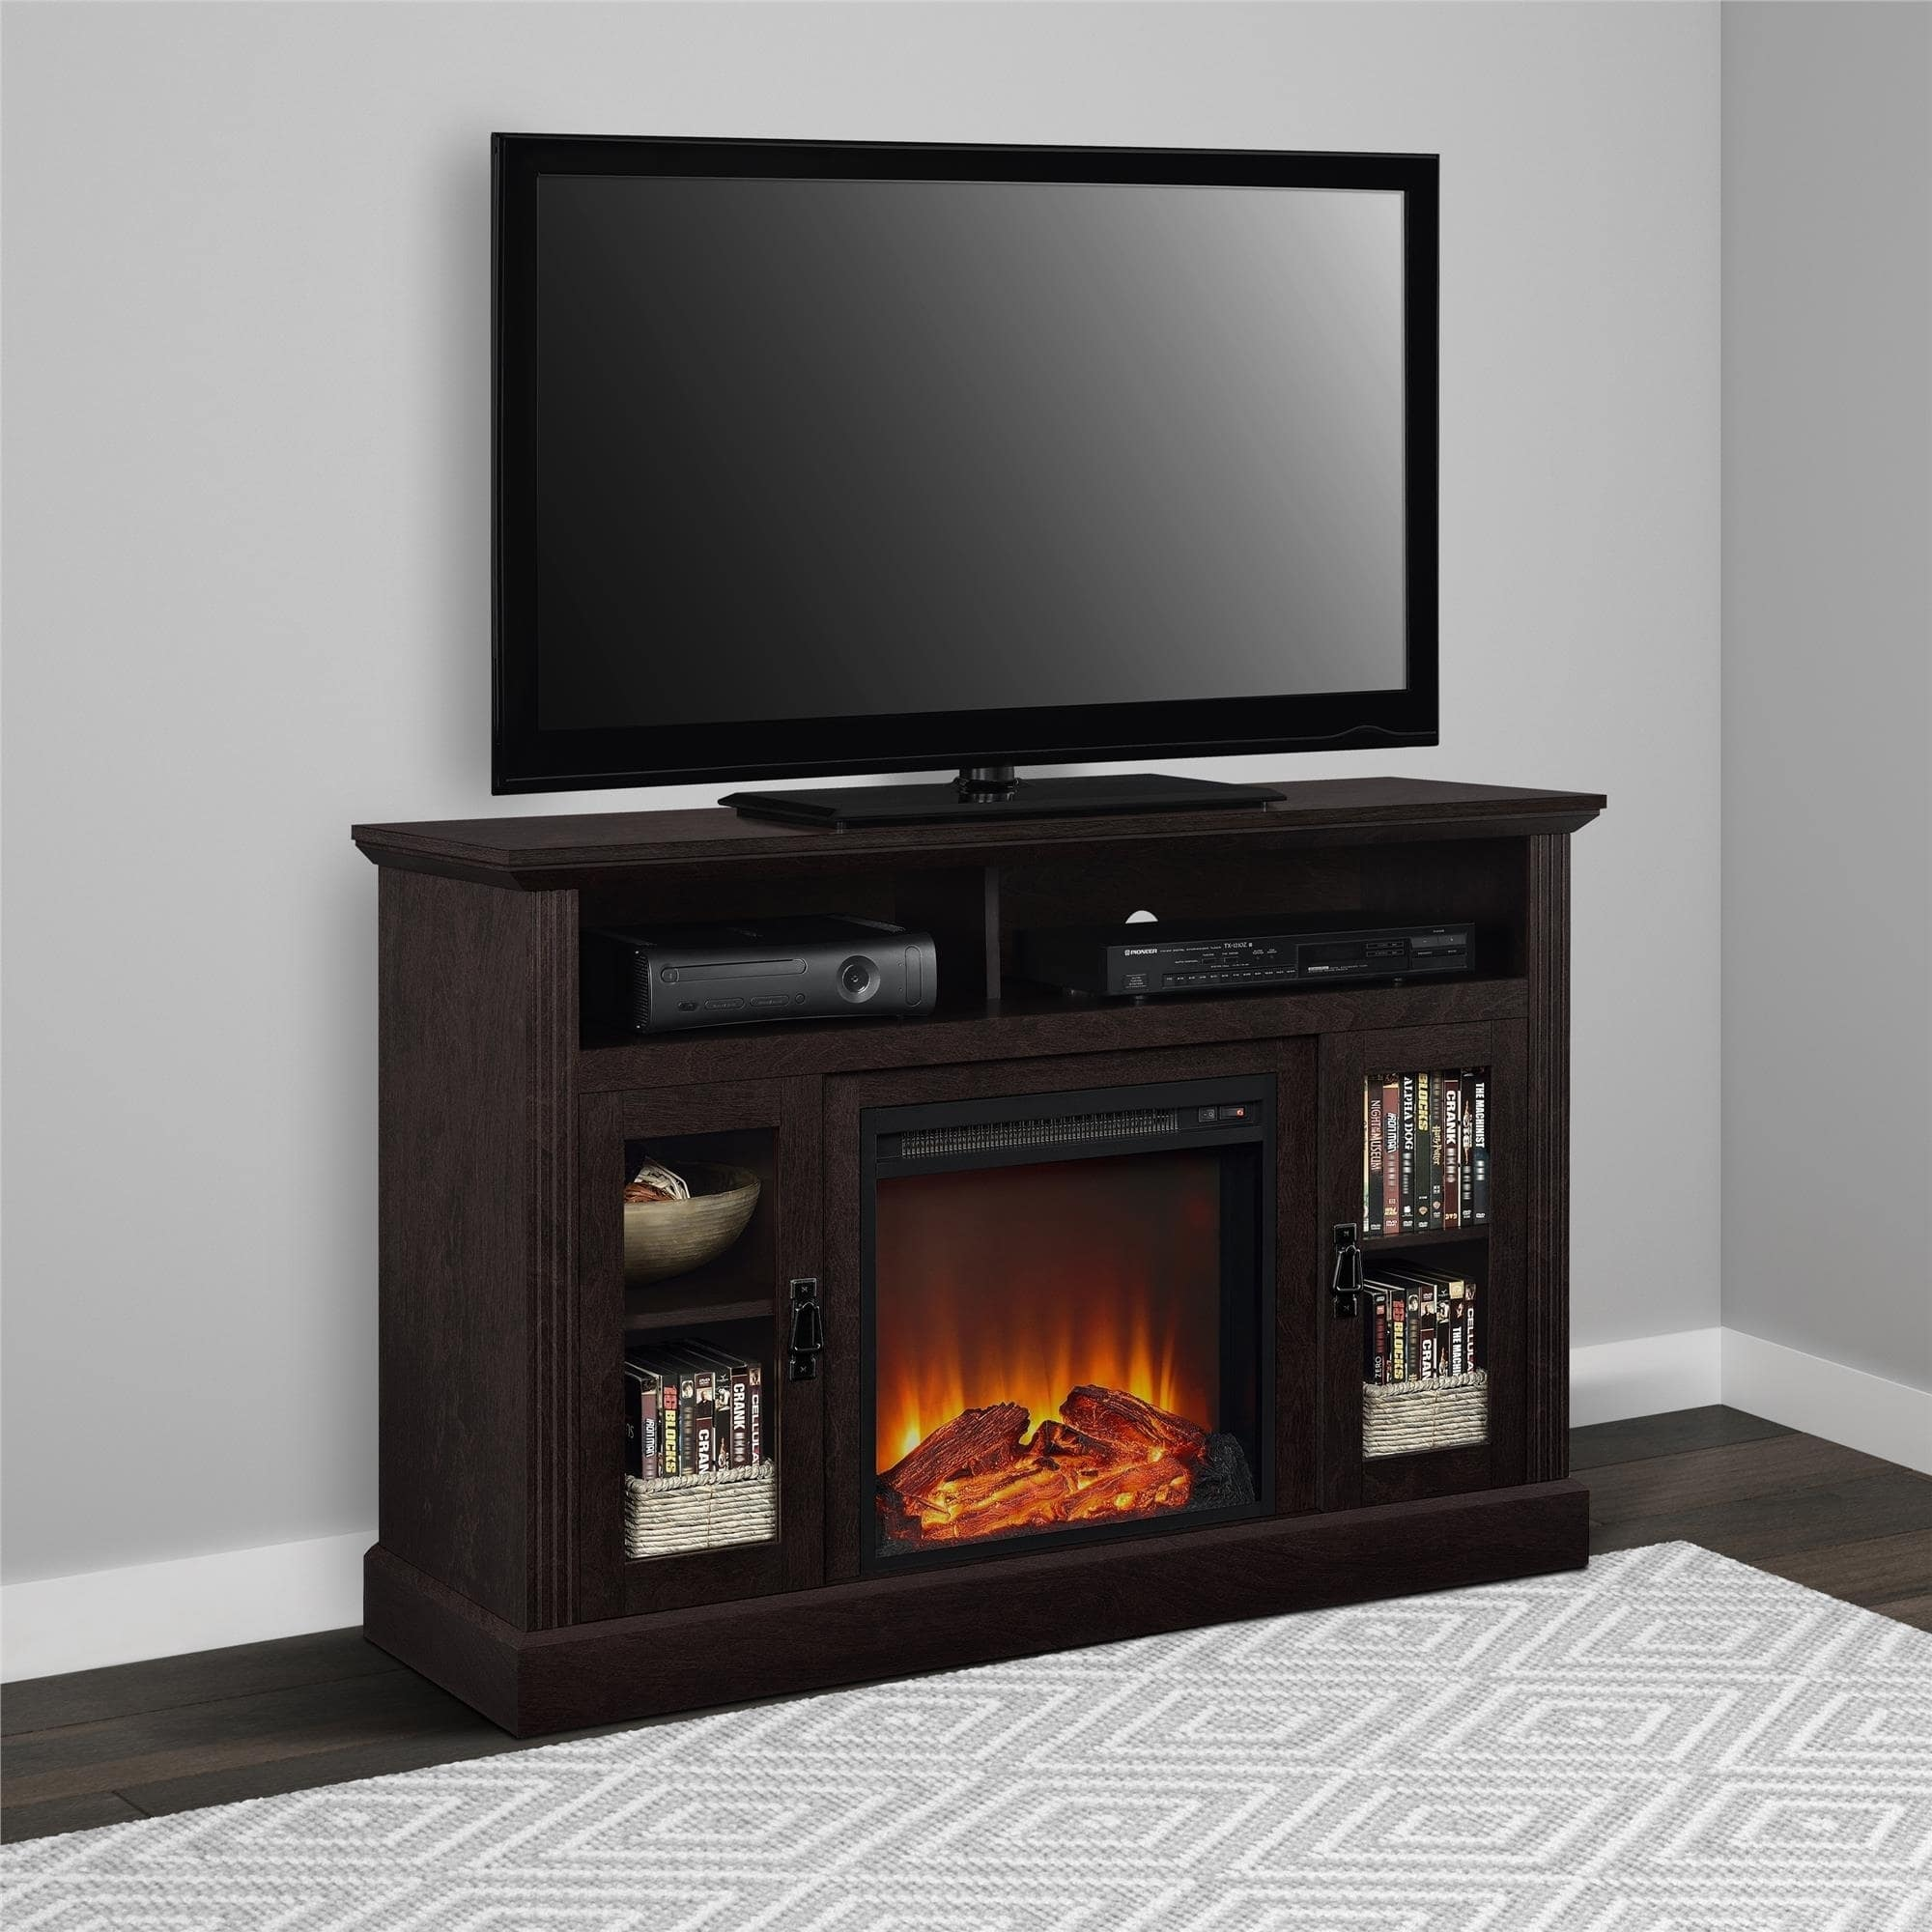 Electric Fireplace 50-inch TV Console